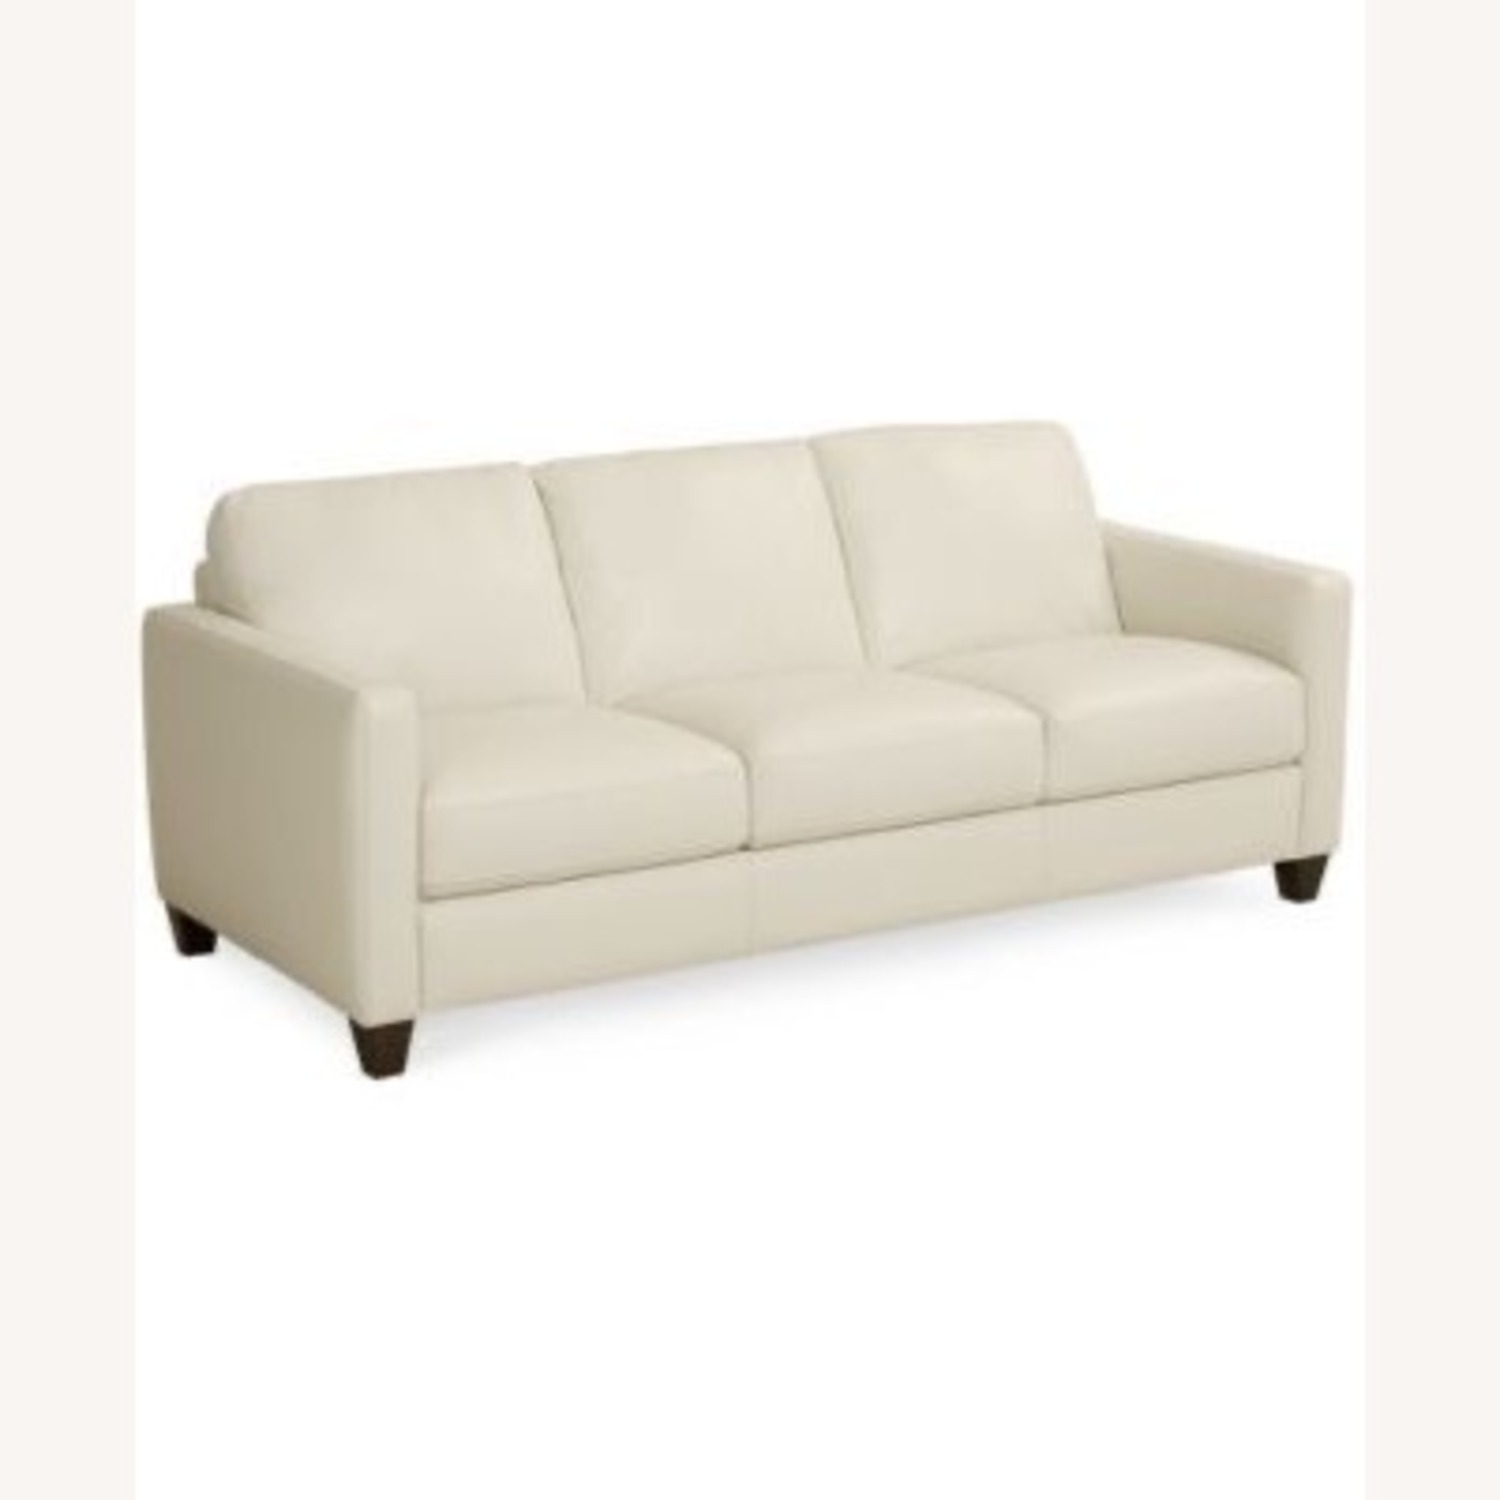 Macy's White Leather Three-seater Couch - image-9